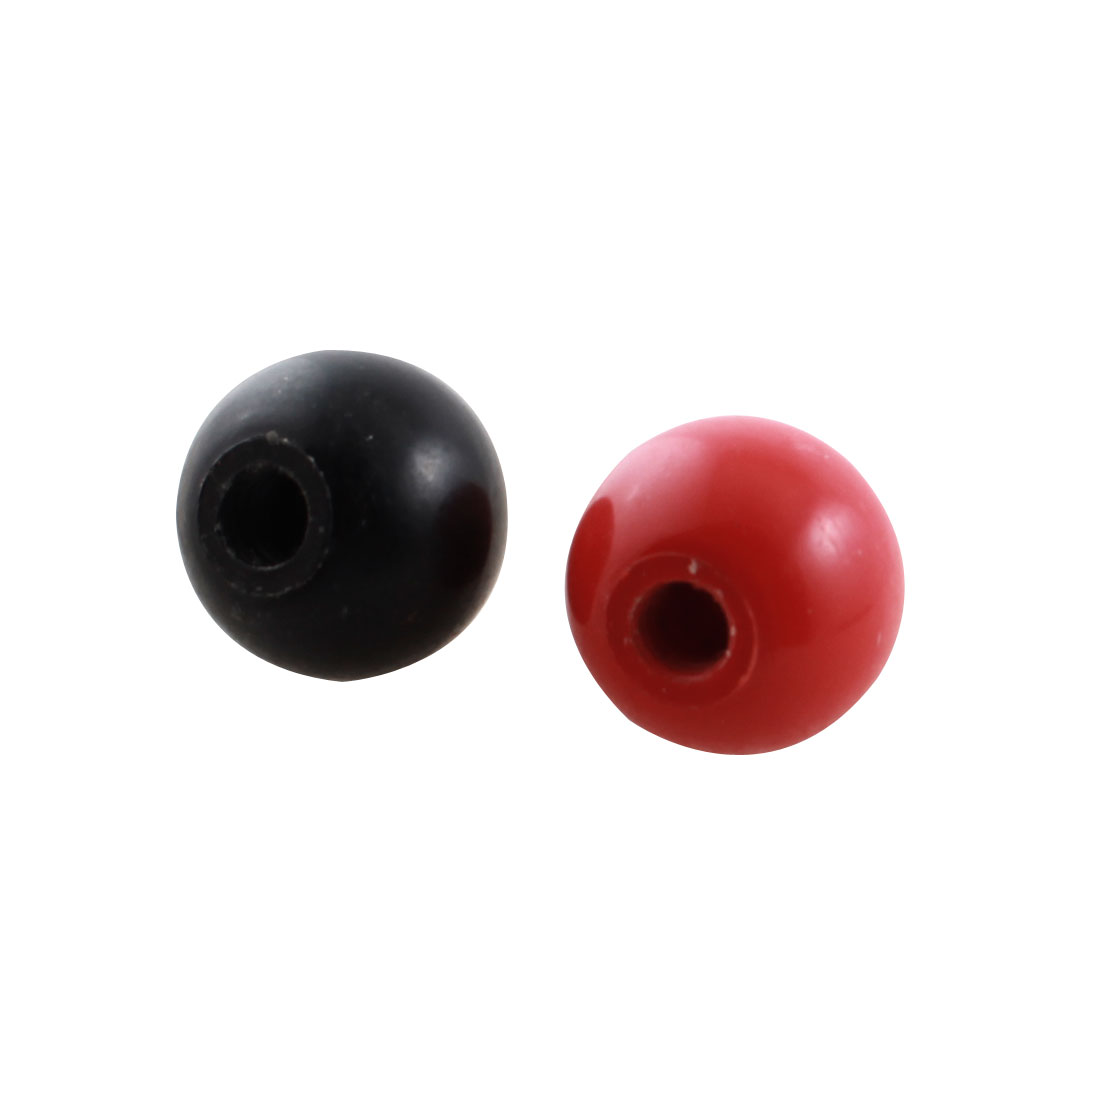 2pcs 20mm Dia Plastic Ball M6 Threaded Blind Hole Handling Knob Black Red